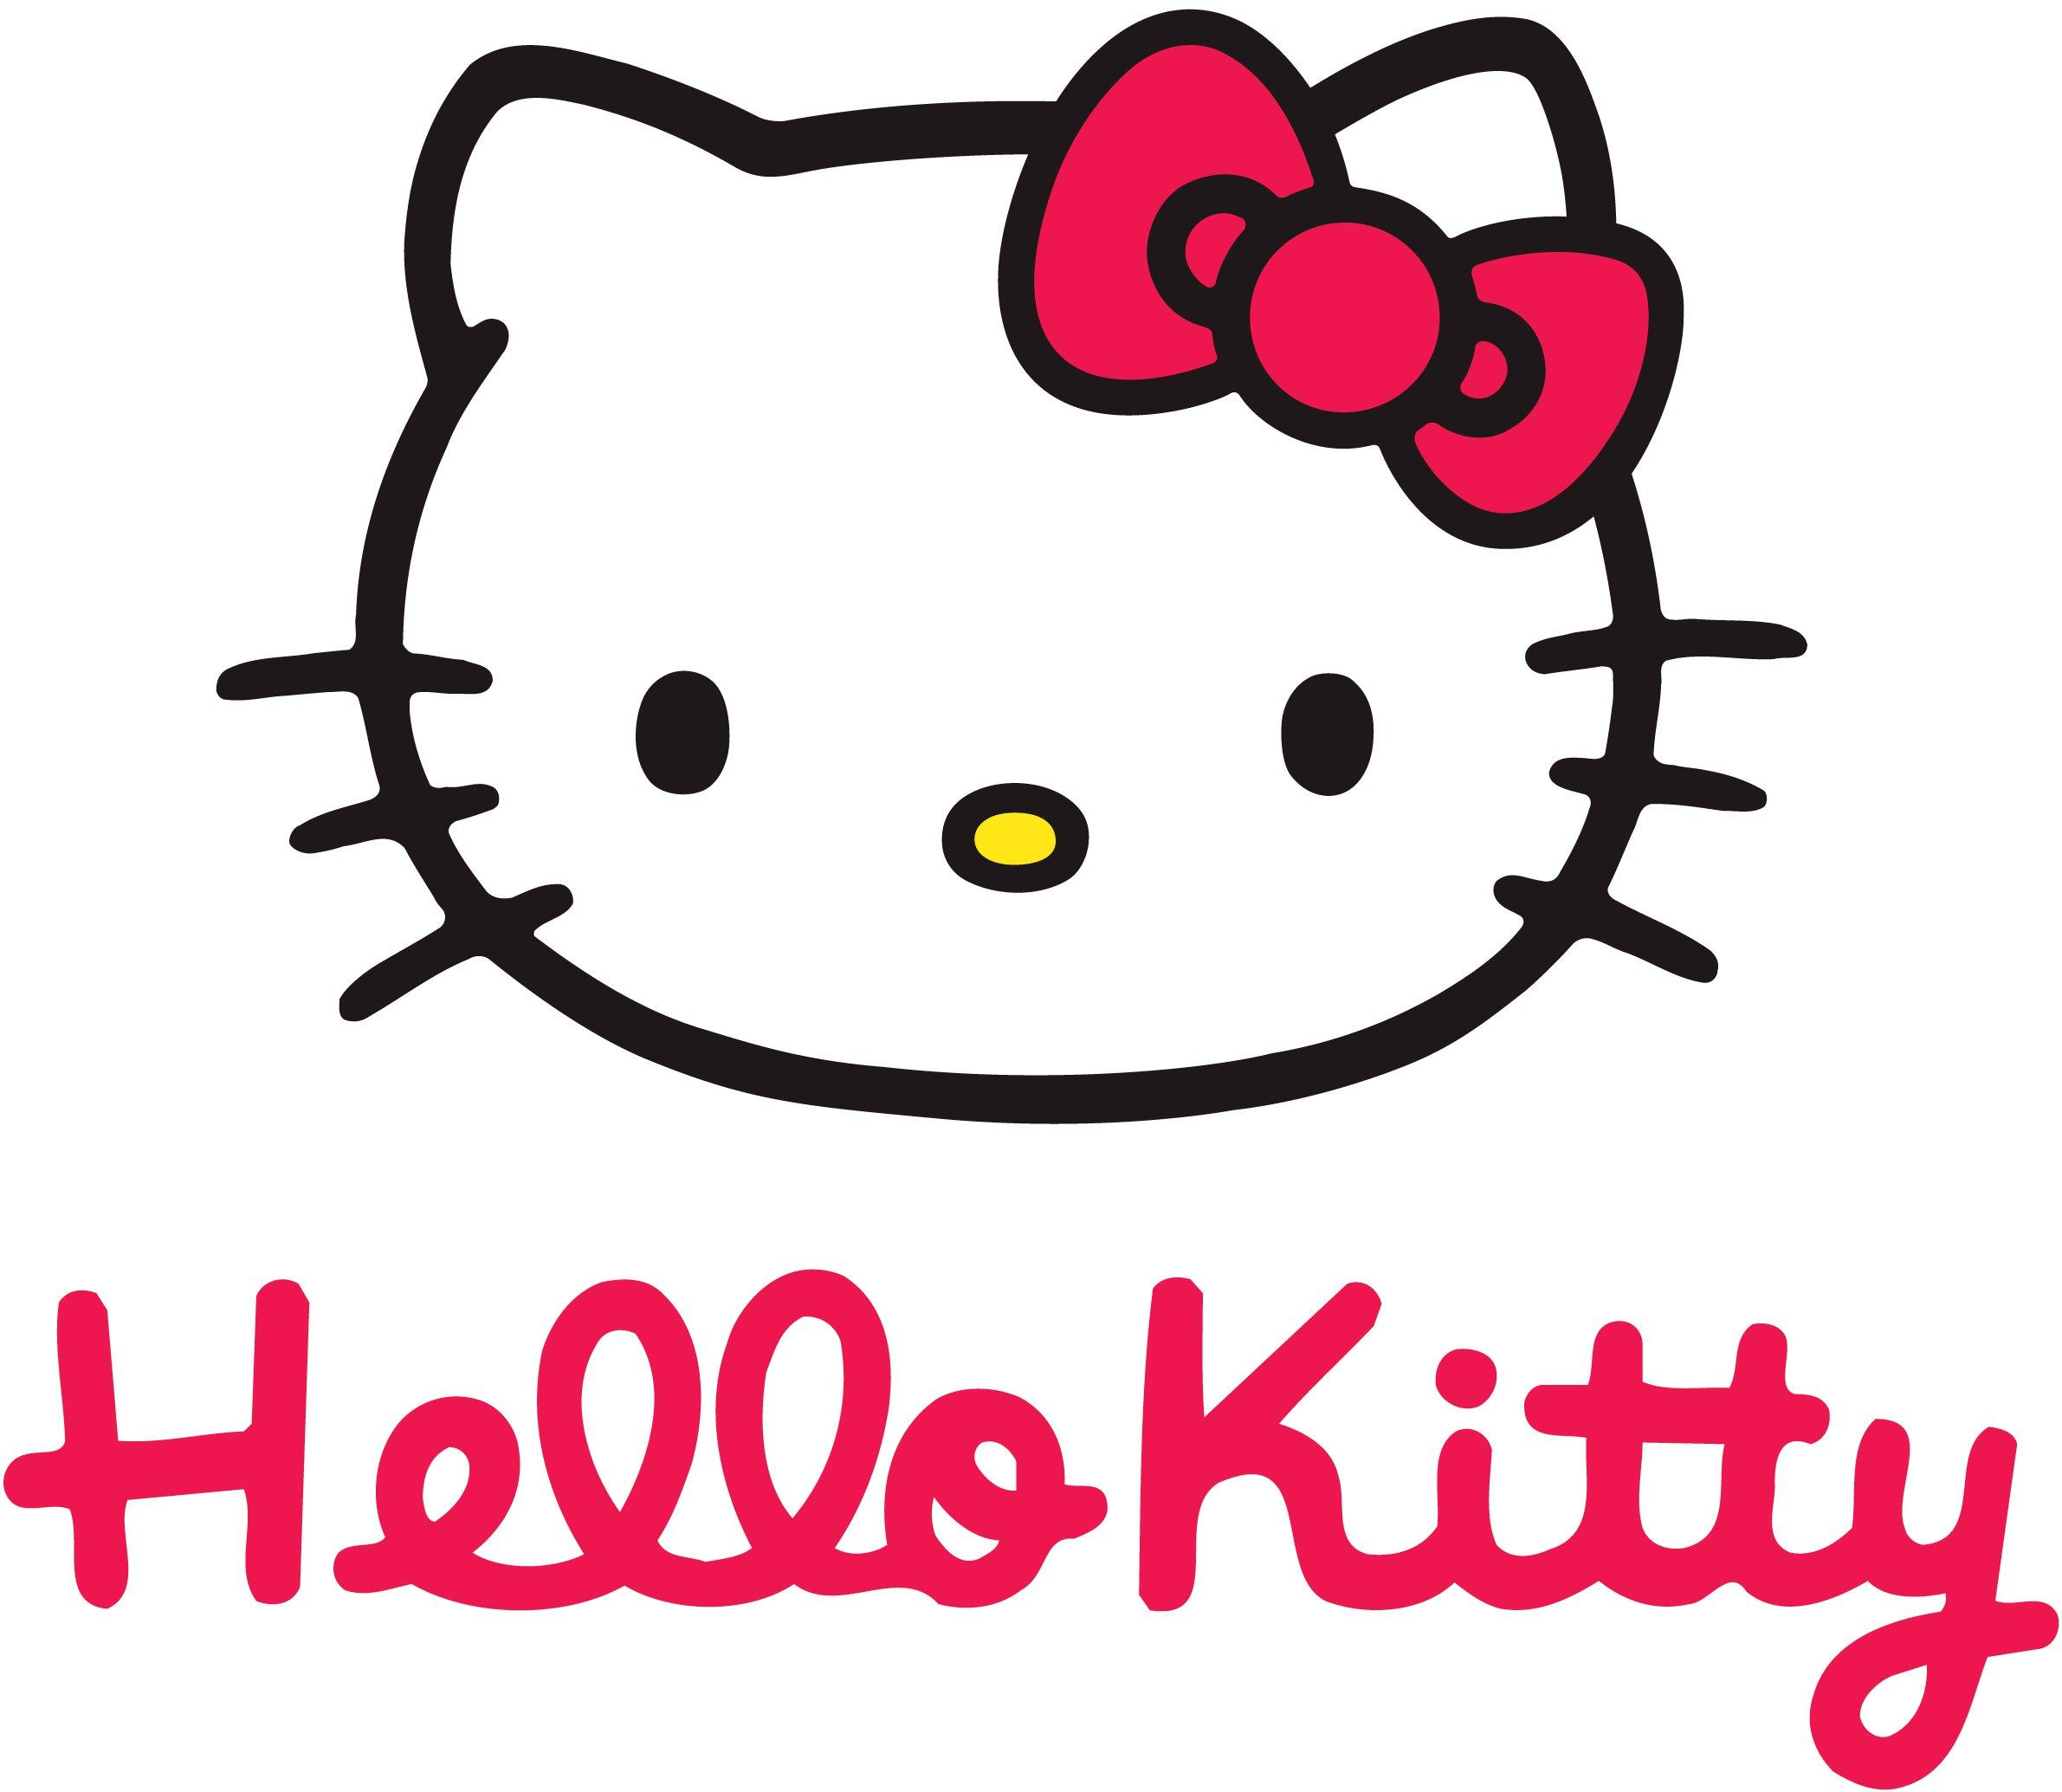 From $1.74 Hello Kitty @ Amazon Japan